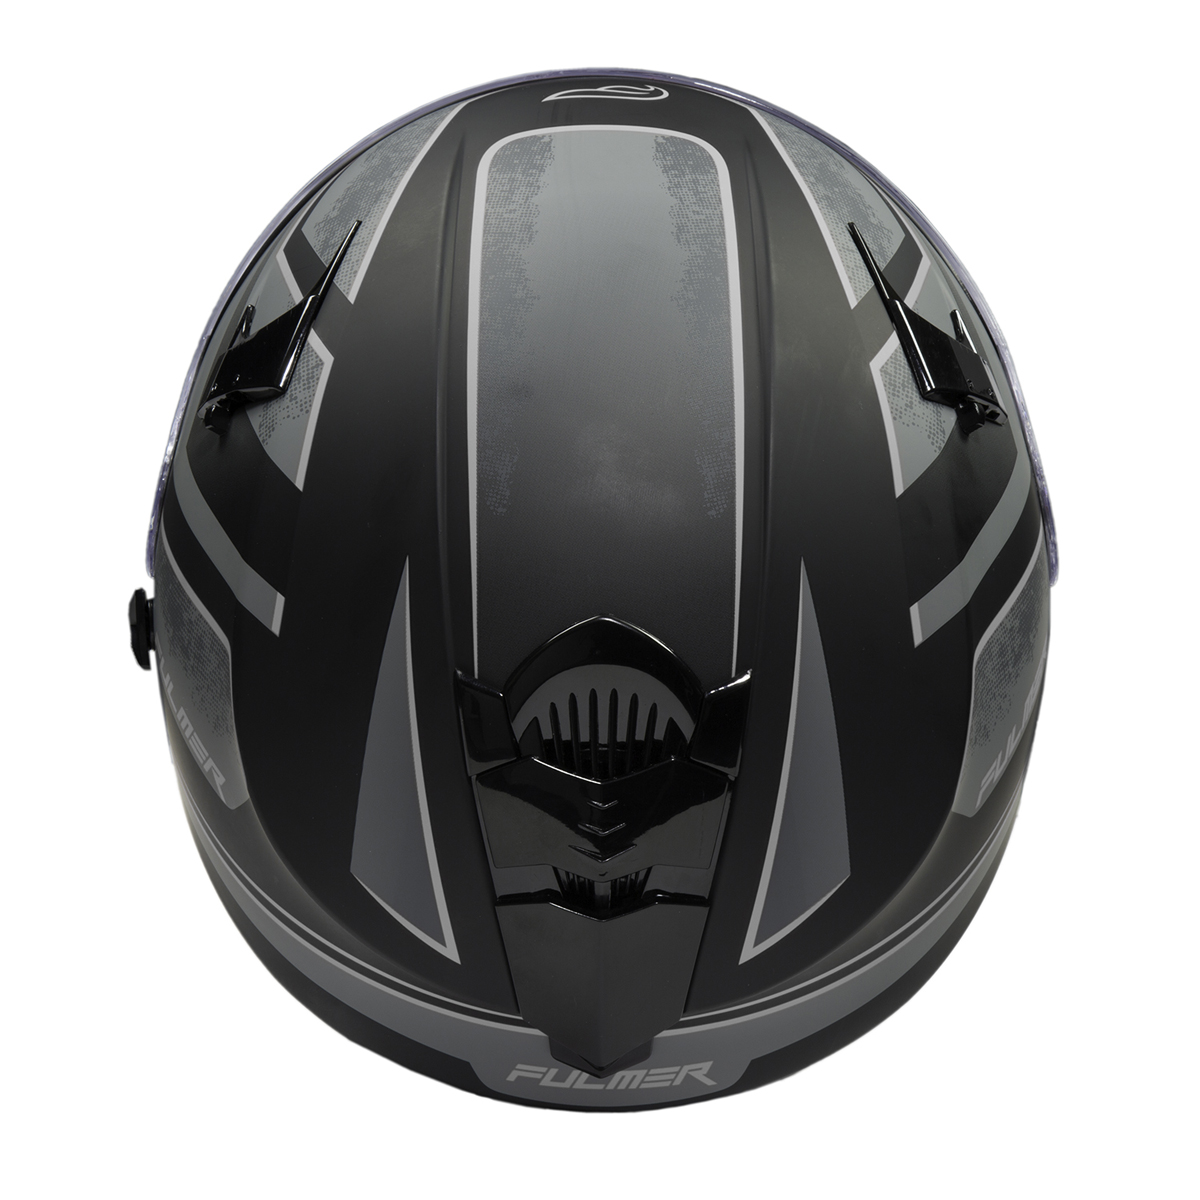 Fulmer-Adult-Full-Face-Motorcycle-Helmet-151-Pulse-DOT-Approved-Street-Bike thumbnail 6